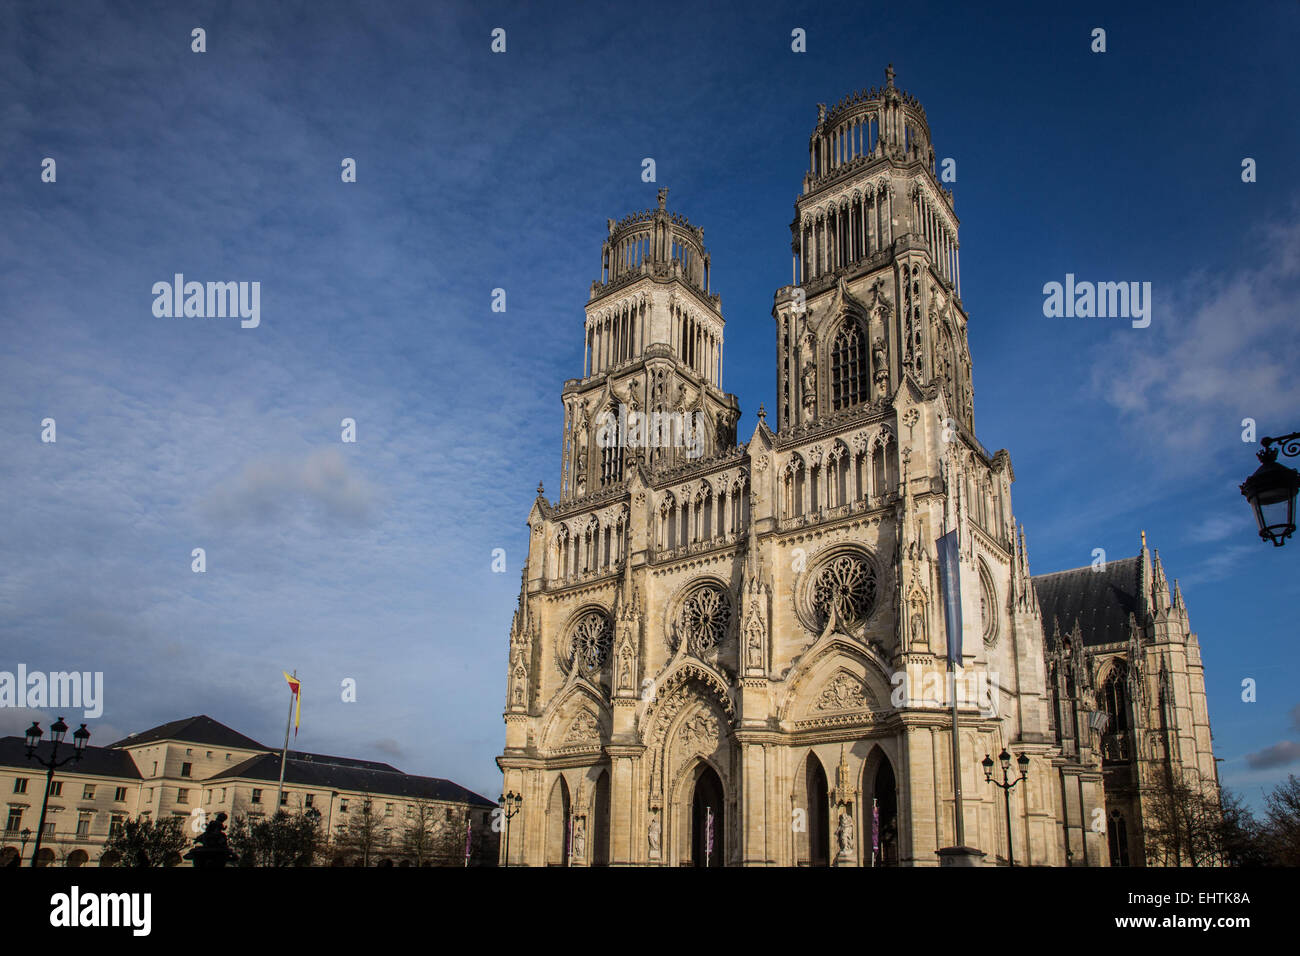 ILLUSTRATION OF THE CITY OF ORLEANS, (45) LOIRET, CENTRE, FRANCE - Stock Image